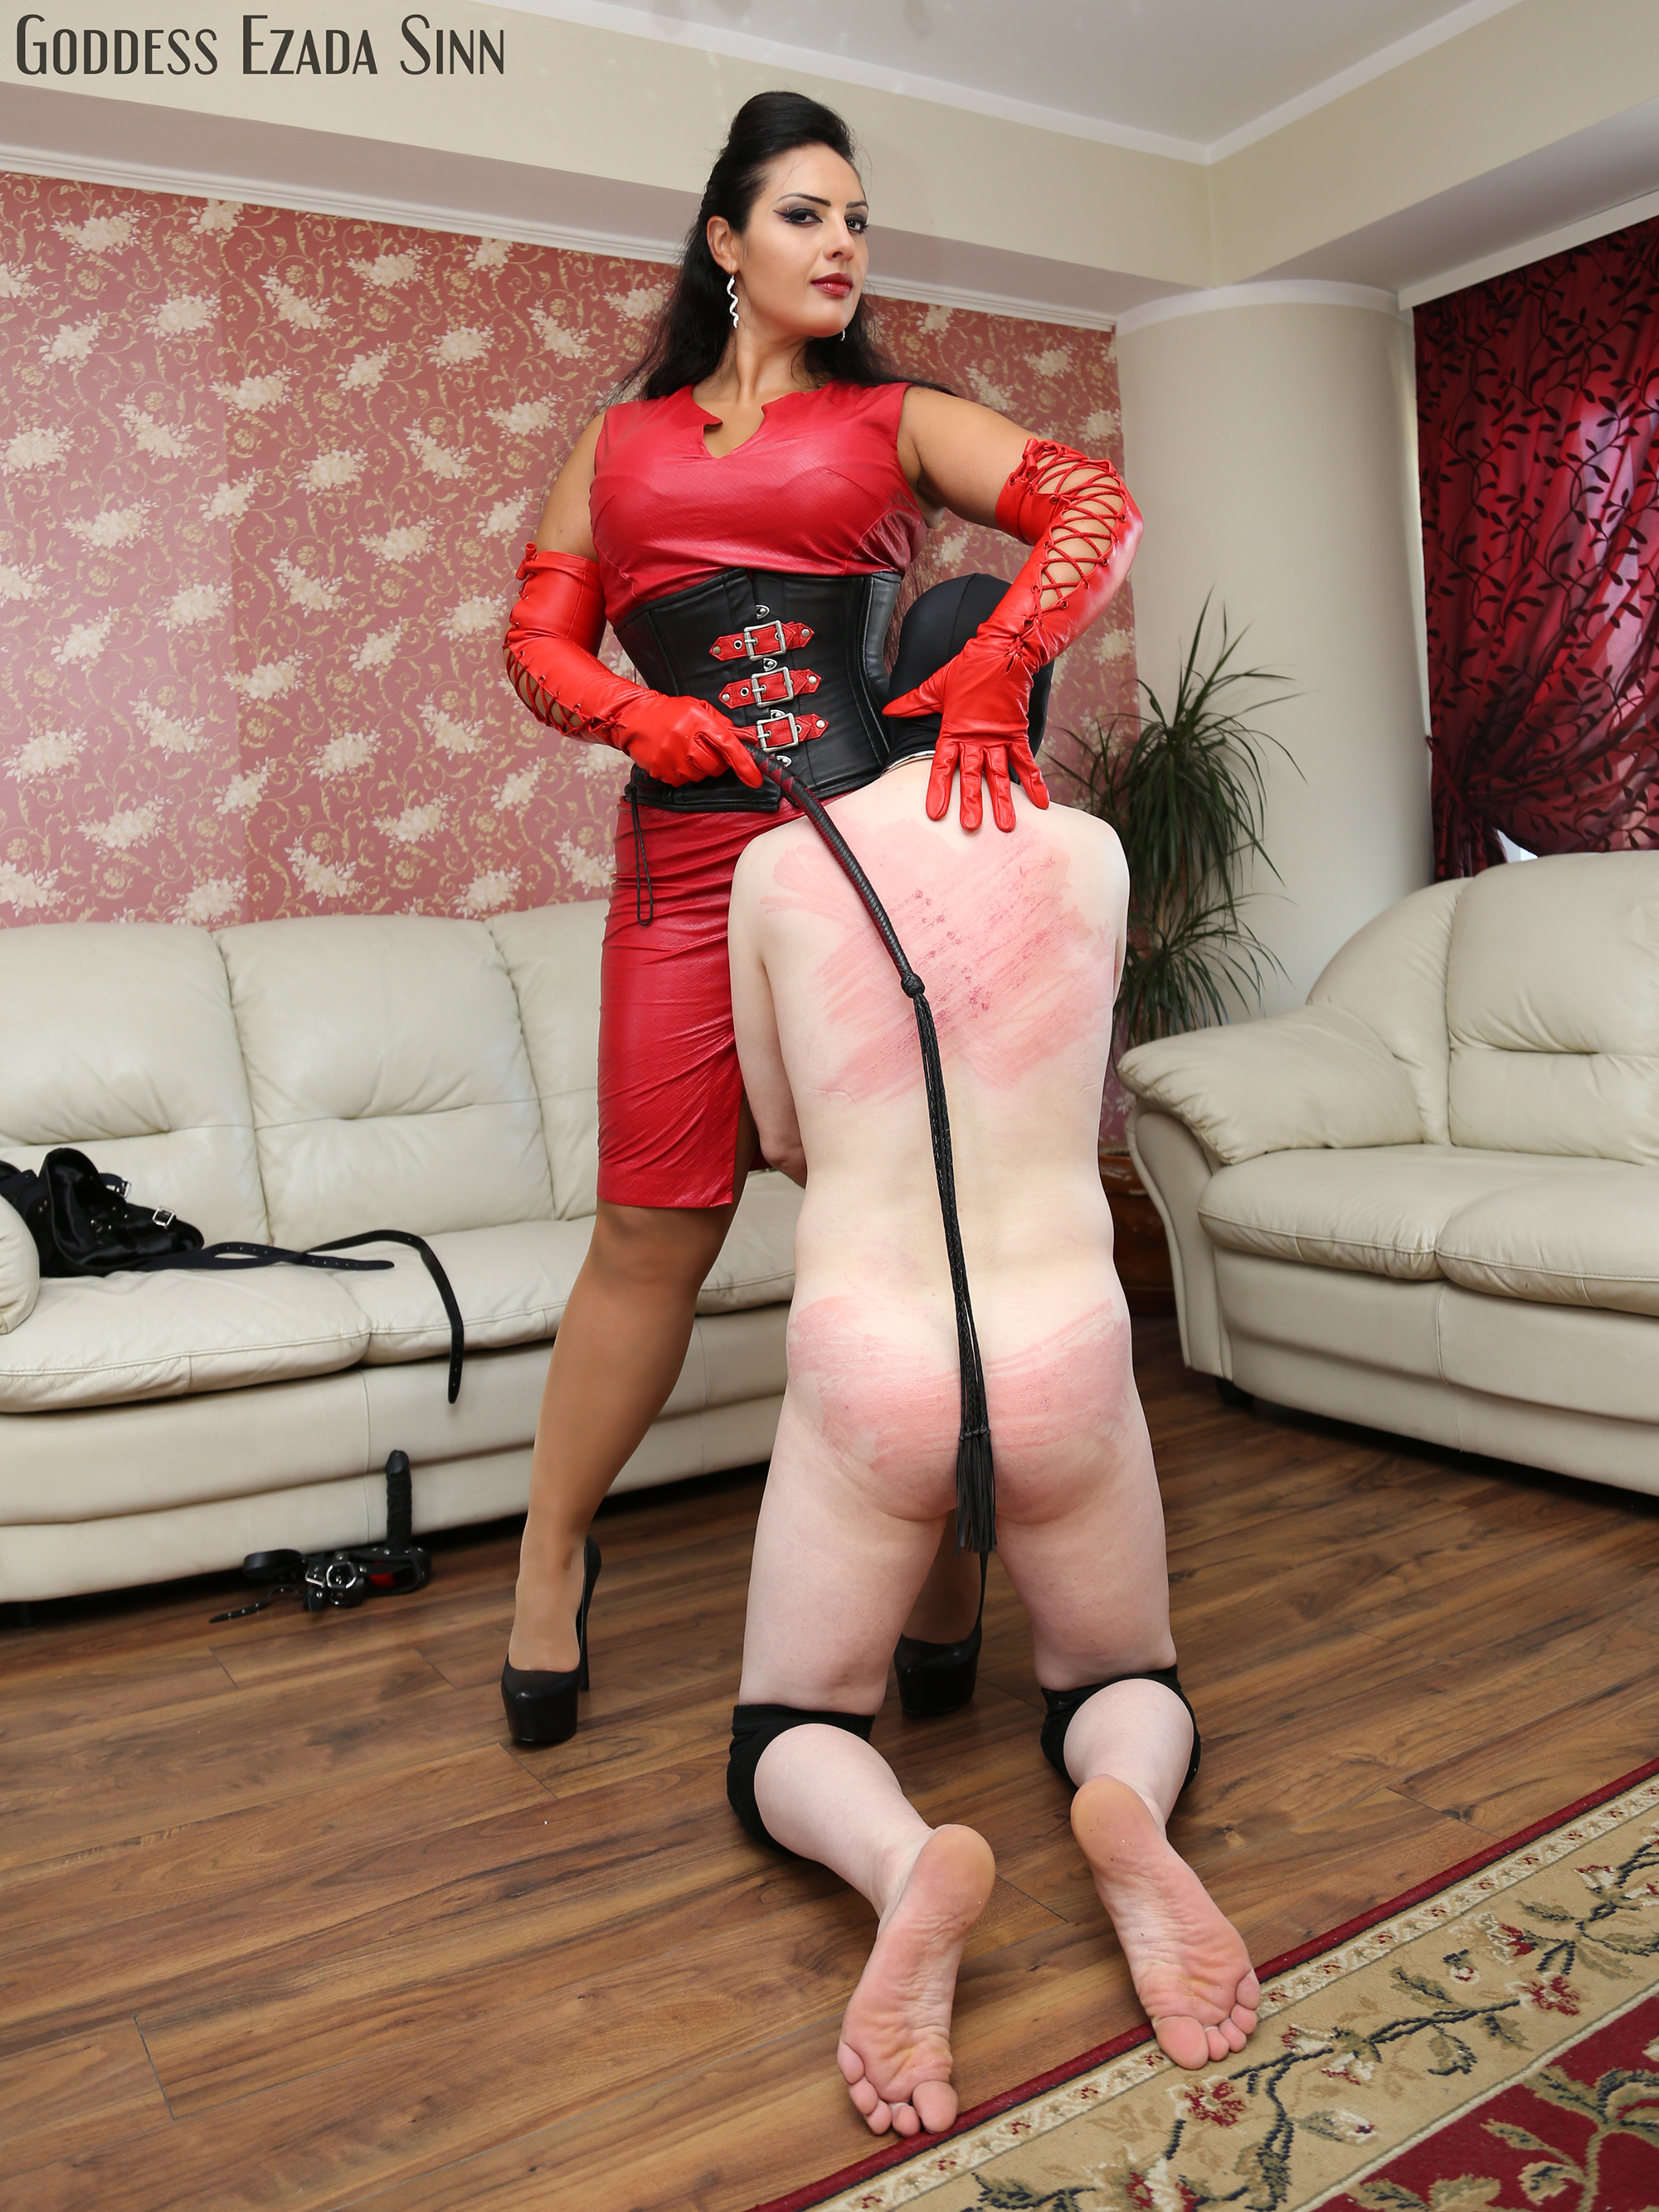 a visit in bucharest by slave pink poodle goddess ezada sinn